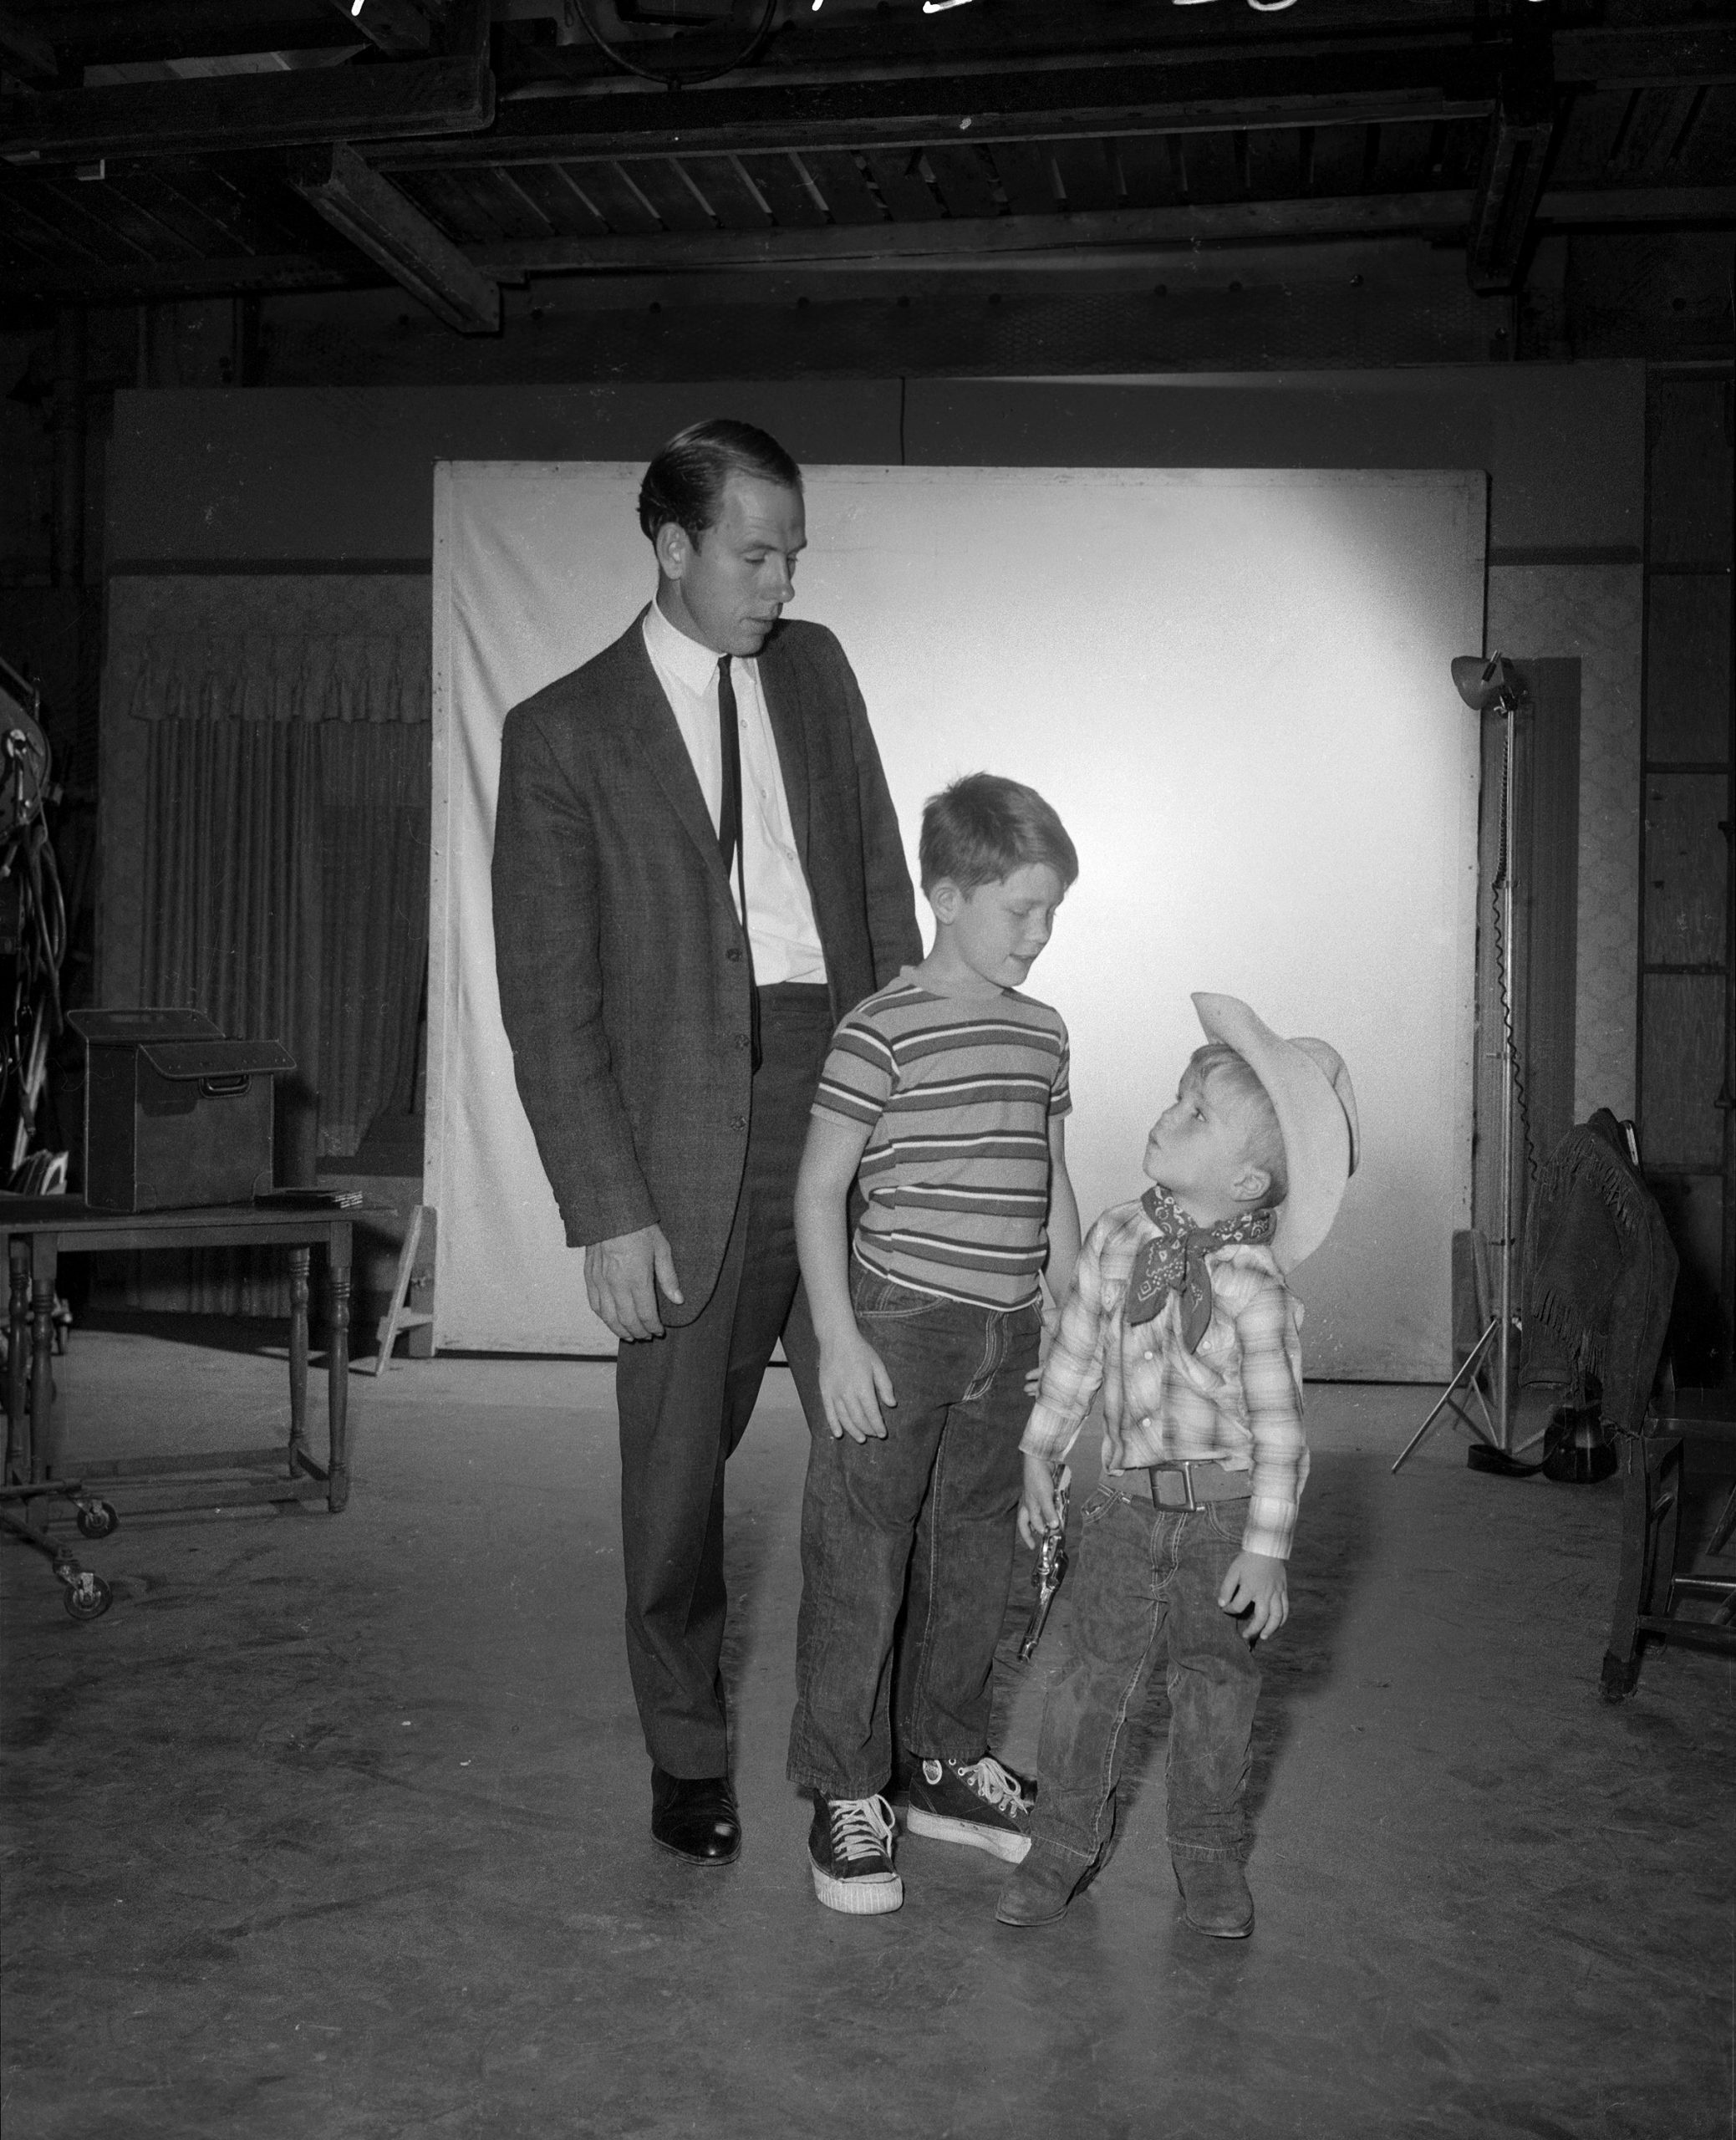 (left to right): Rance Howard with his sons, actors Ron Howard and Clint Howard on 'The Andy Griffith Show' set in 1963